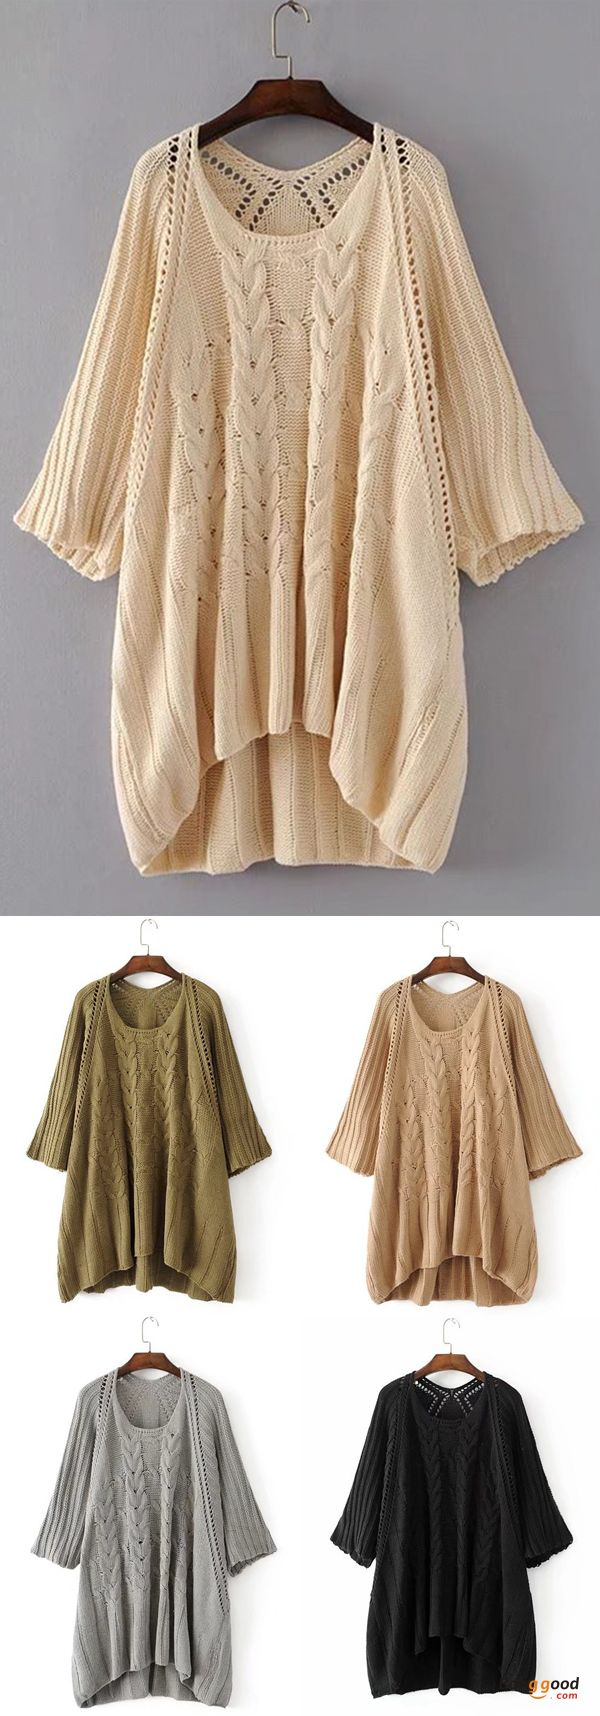 US$38.98 + Free shipping. Fall in love with elegant and casual style! Plus Size Vintage Women Hollow Loose Knitted Sweaters.